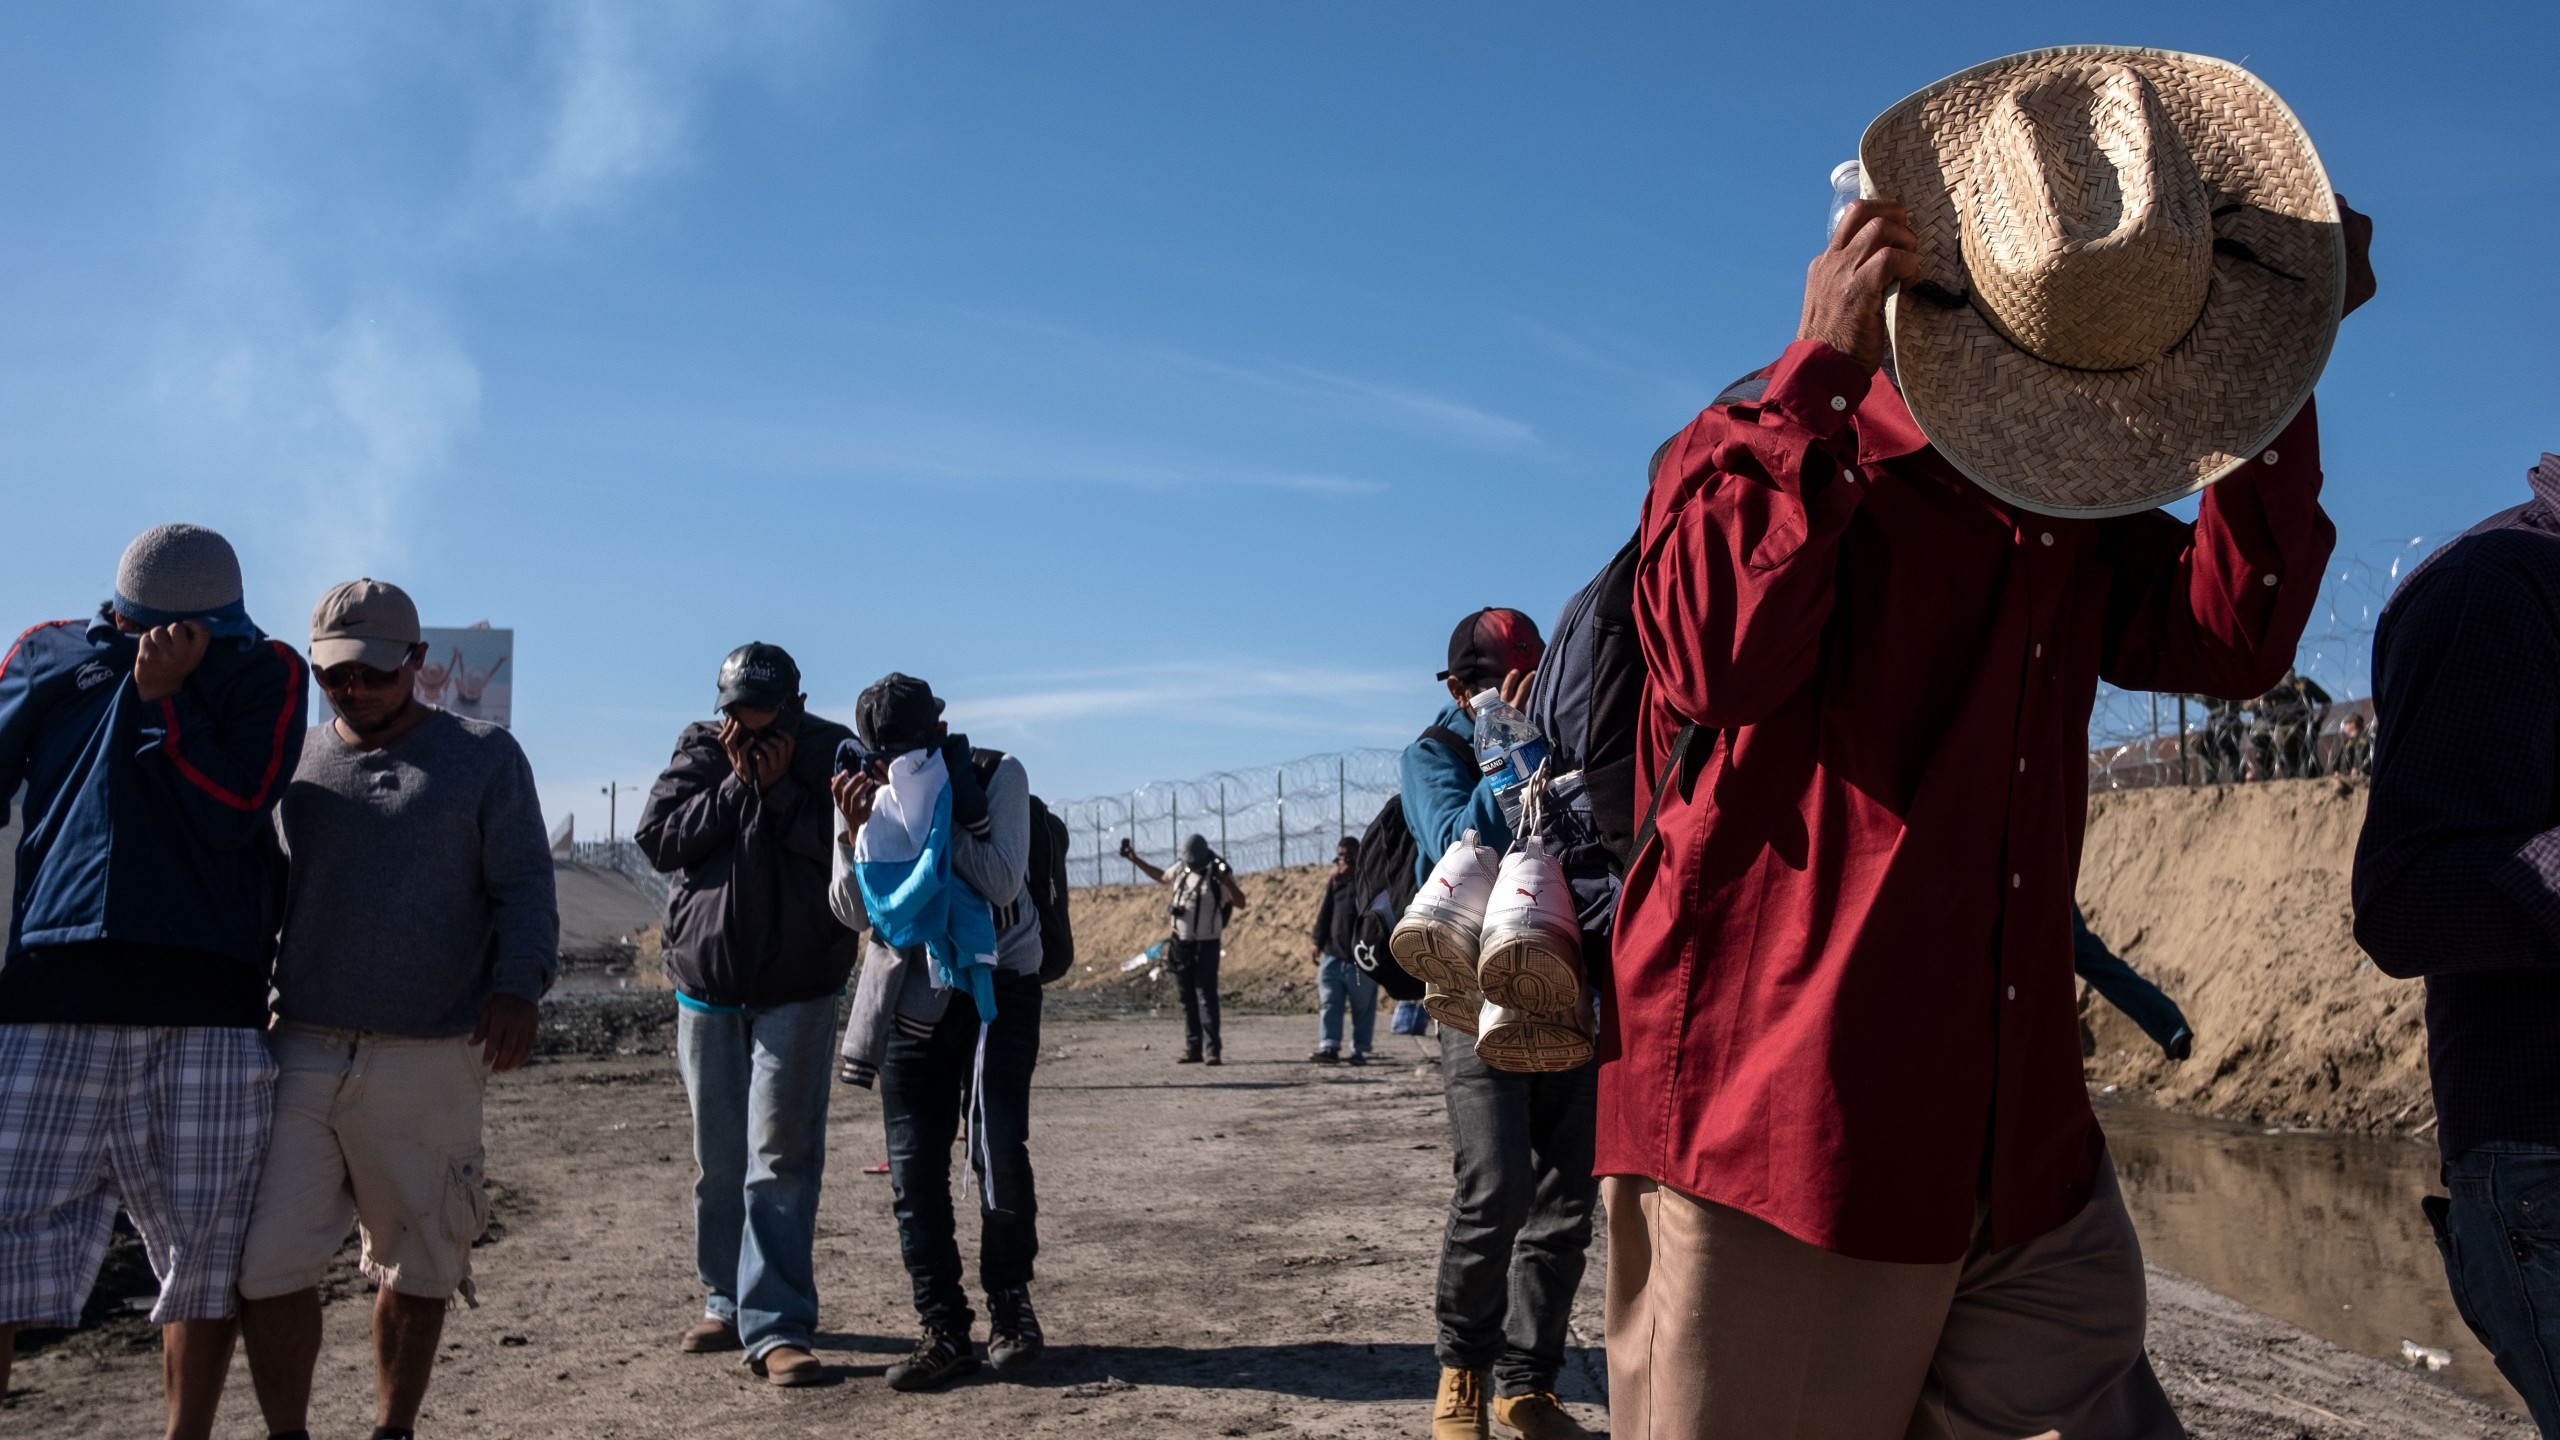 Central American migrants cover their faces next to the Tijuana River near the El Chaparral border crossing in Tijuana, Mexico, after the U.S. Border Patrol threw tear gas to disperse them after an alleged verbal dispute on Nov. 25, 2018. (Credit: Guillermo Arias / AFP / Getty Images)